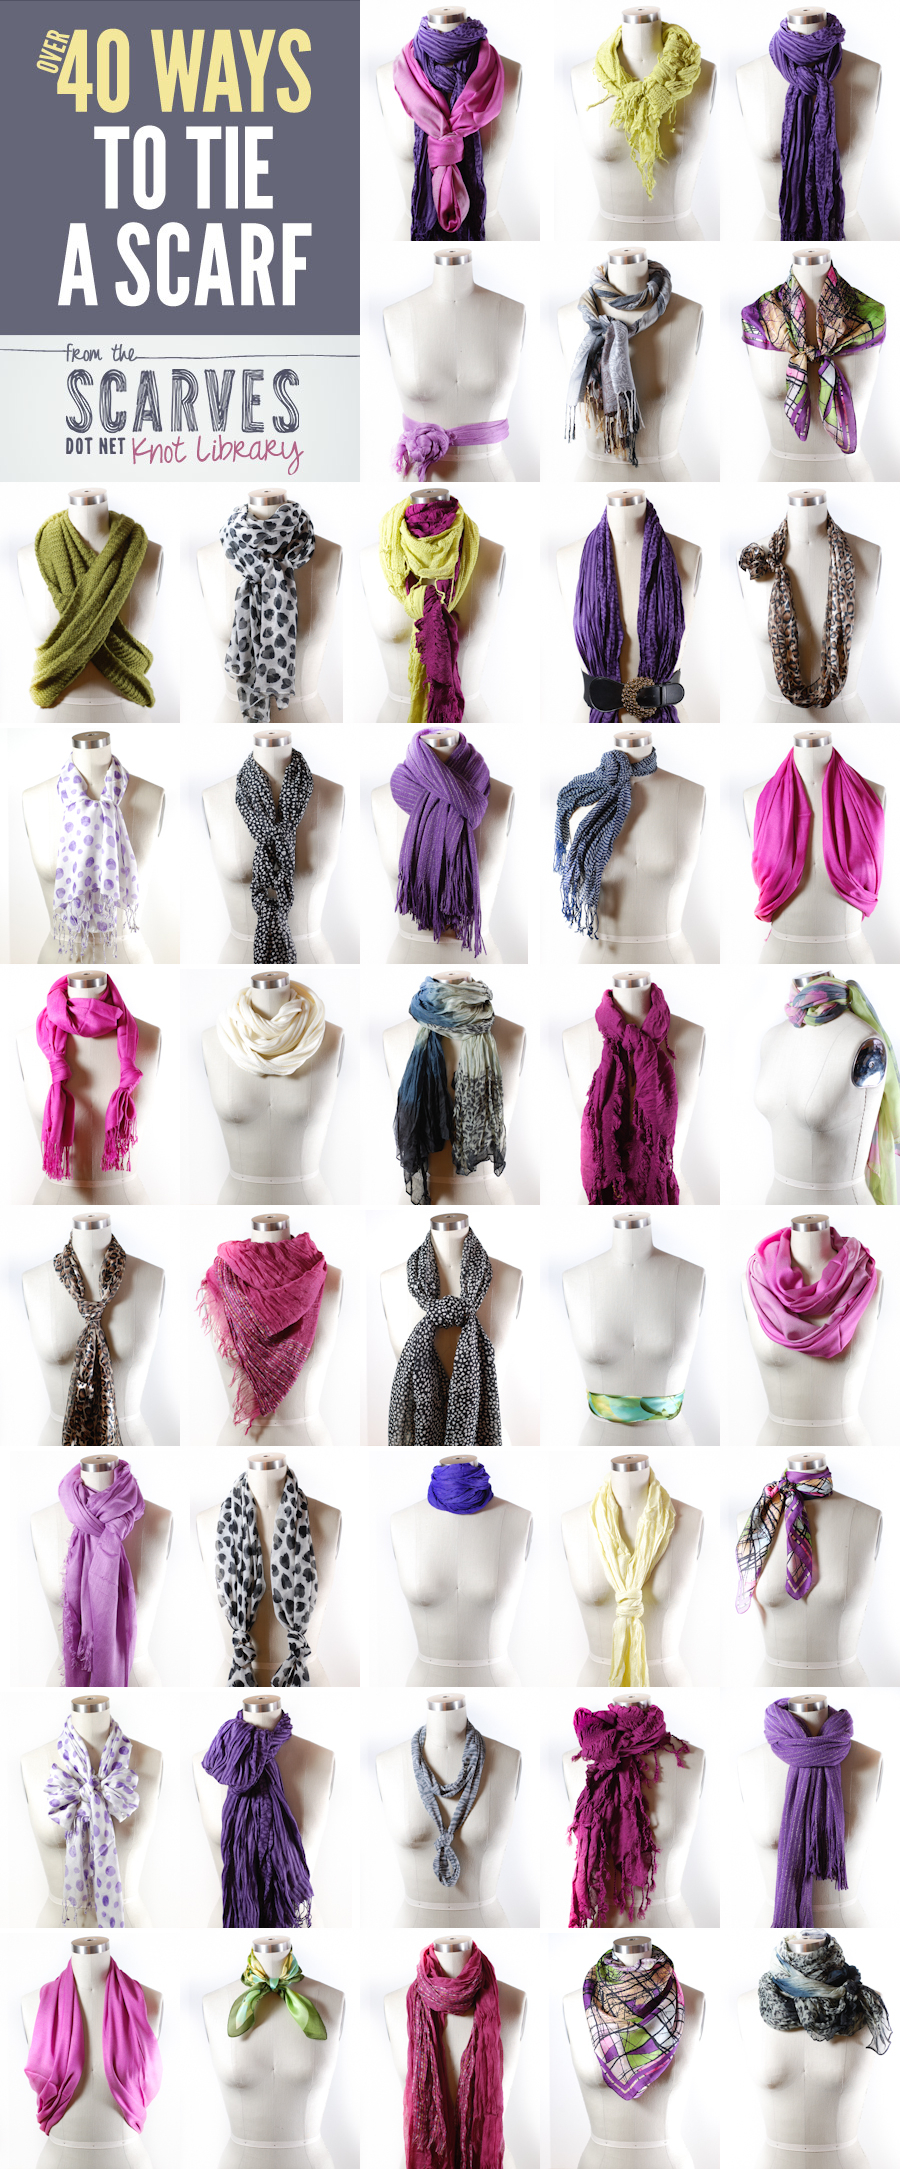 """My mother's wardrobe essential can be summed up with these many """"Ways t"""